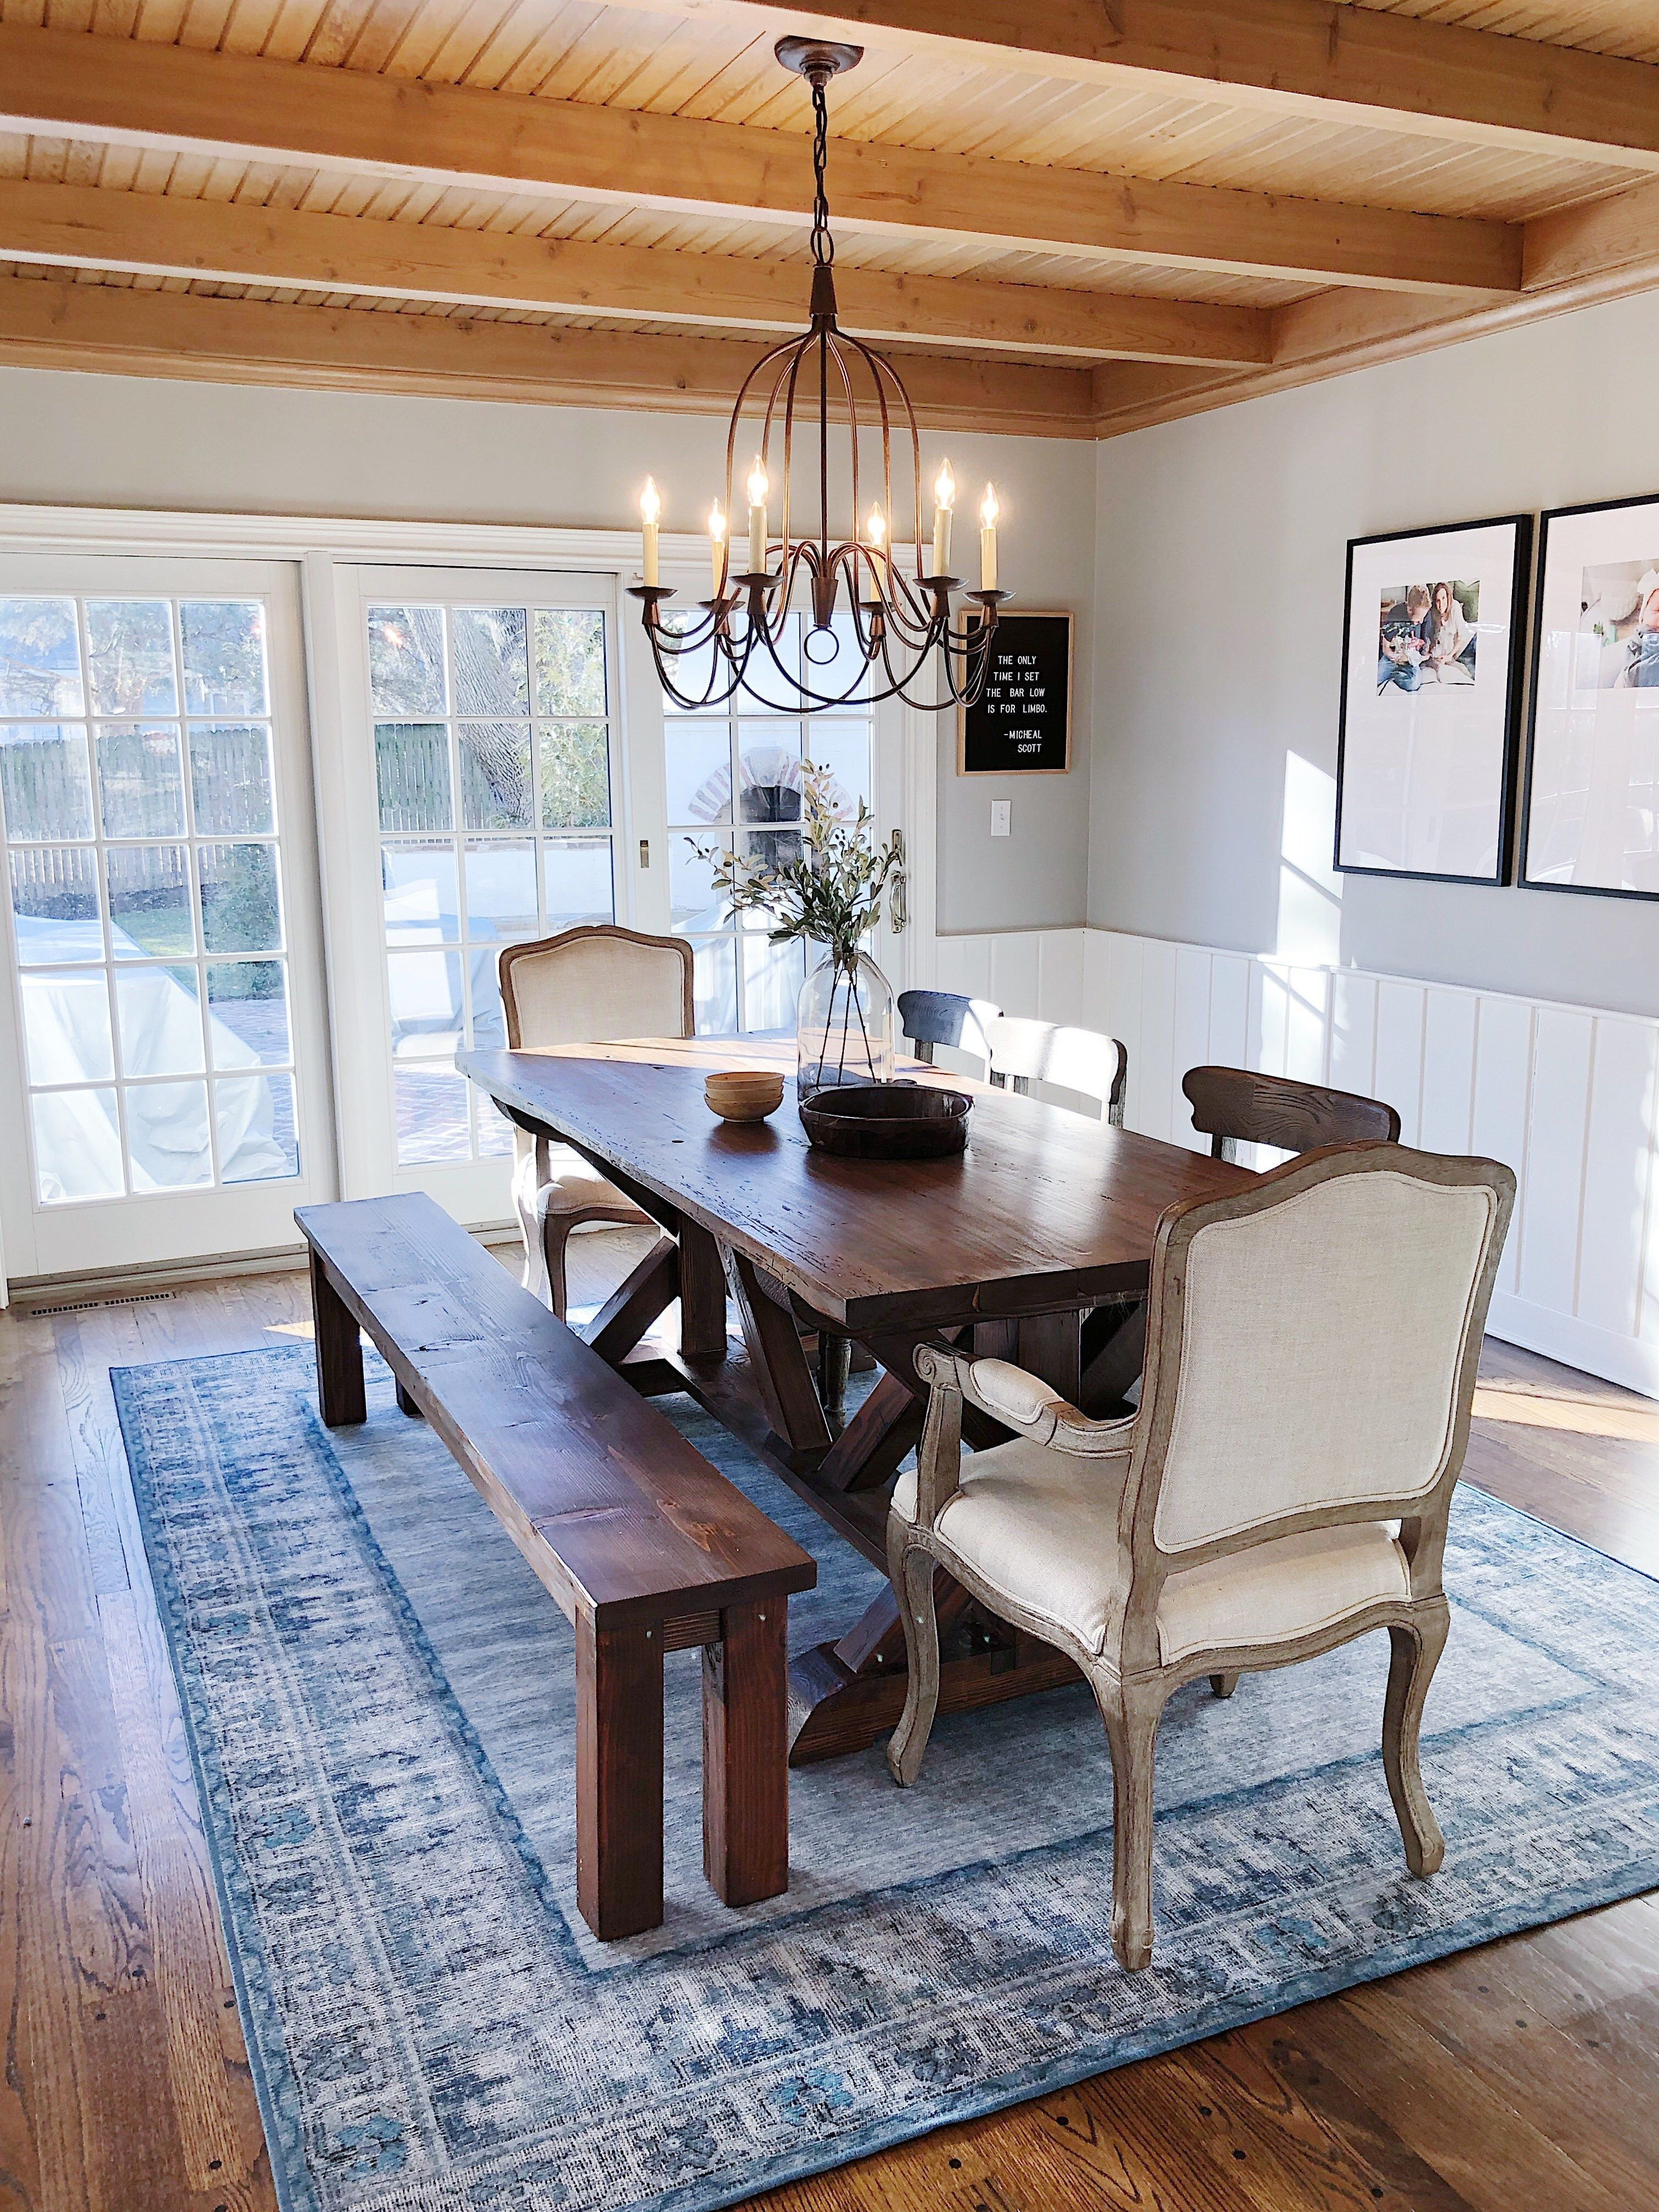 Machine Washable Dining Room Rug Mindfully Gray Dining Room Rug Dining Rug Dining Room Remodel #washable #living #room #rugs